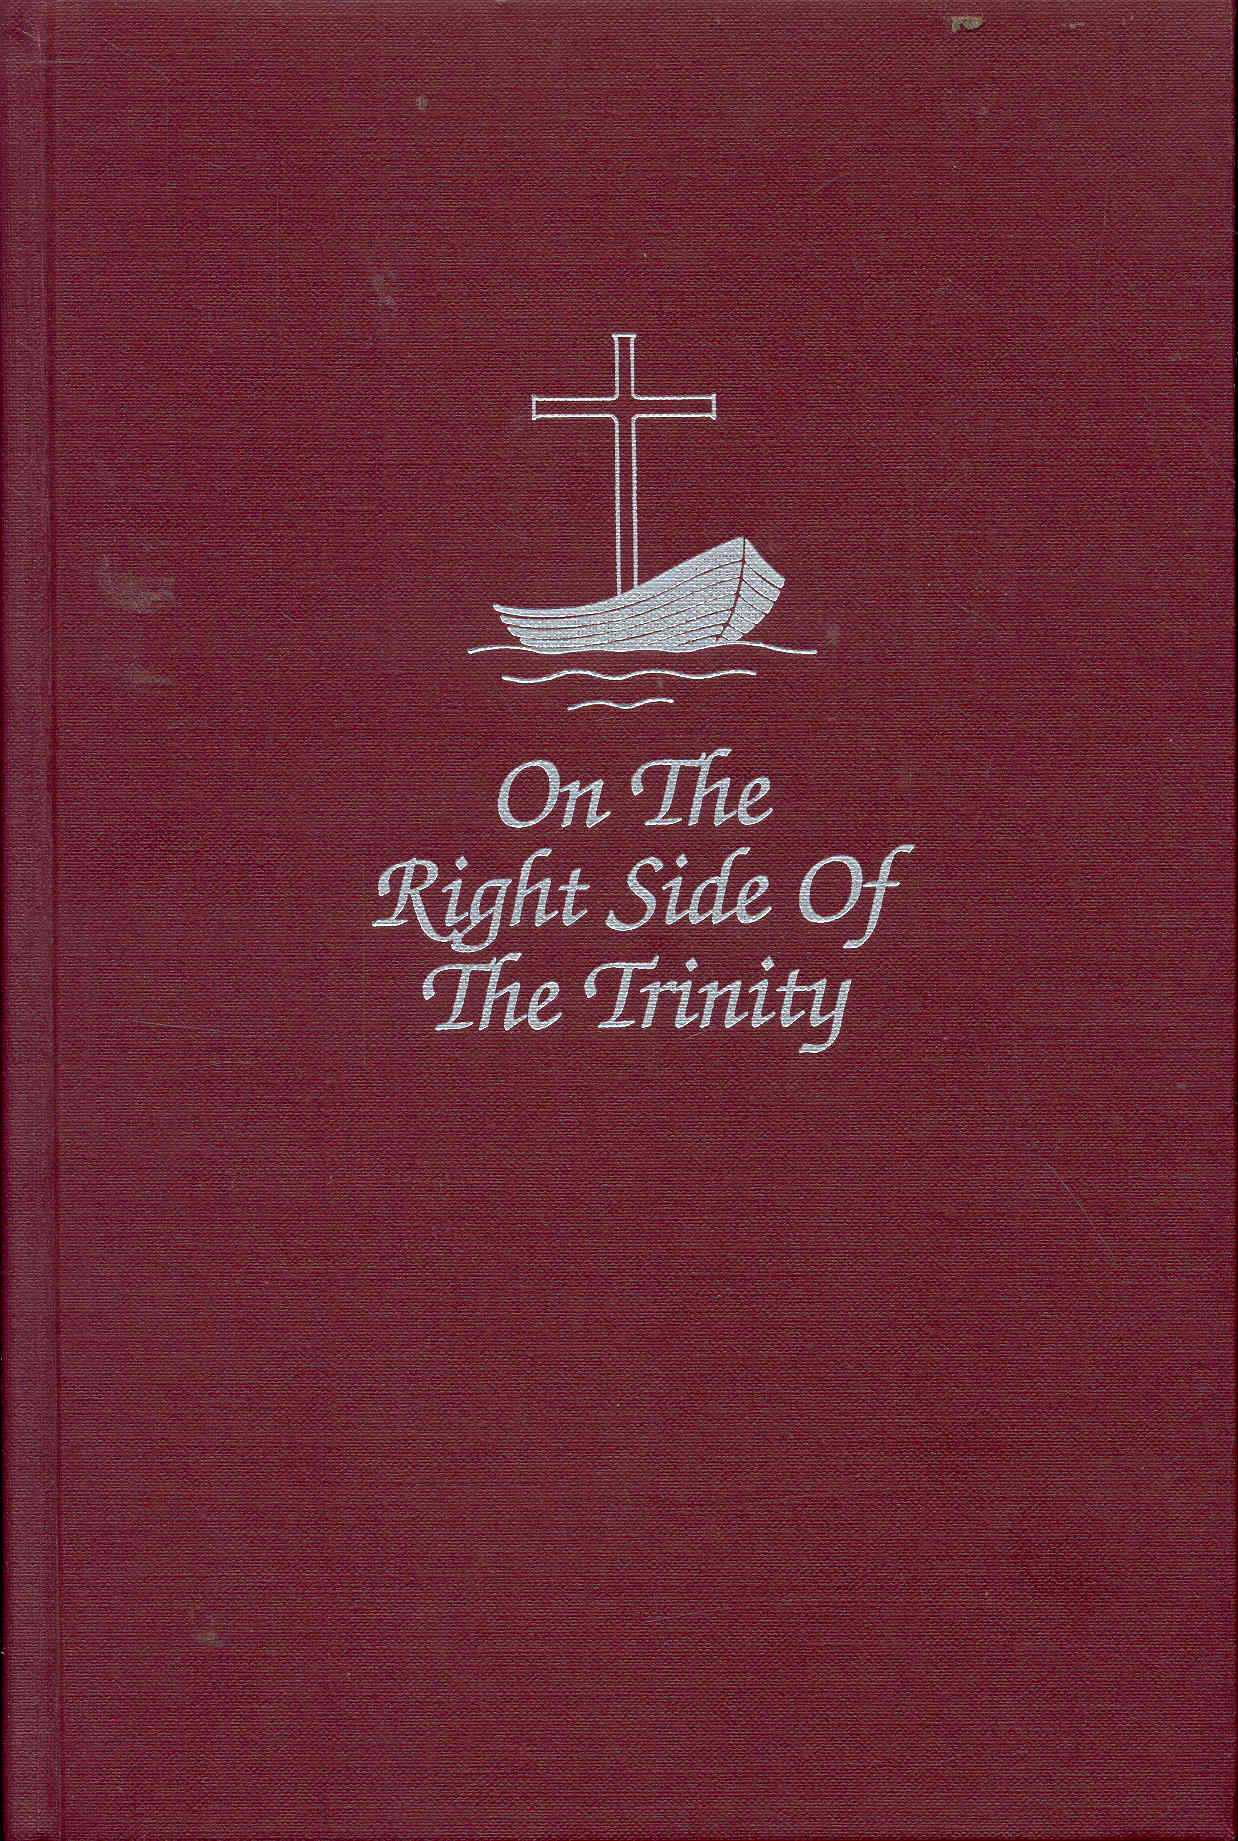 Image for On the Right Side of the Trinity: The History of Oak Cliff Presbyterian Church Dallas, Texas 1890-1990